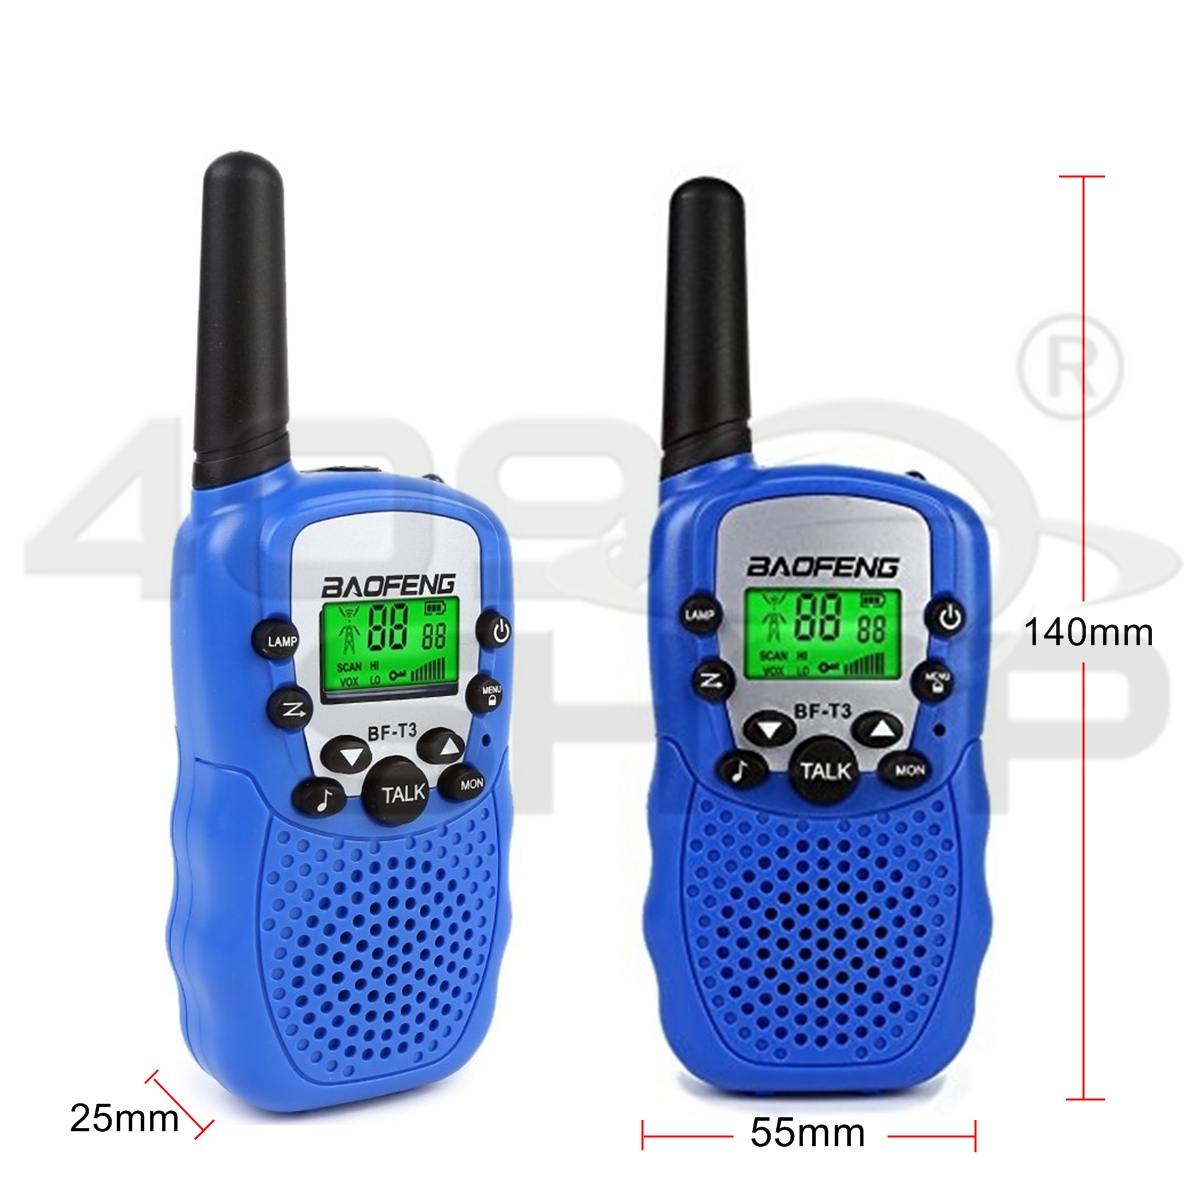 BaoFeng T-3 Kids Walkie Talkie Two Way Radio (1 Pair), Blue BF-T3 Mini radio